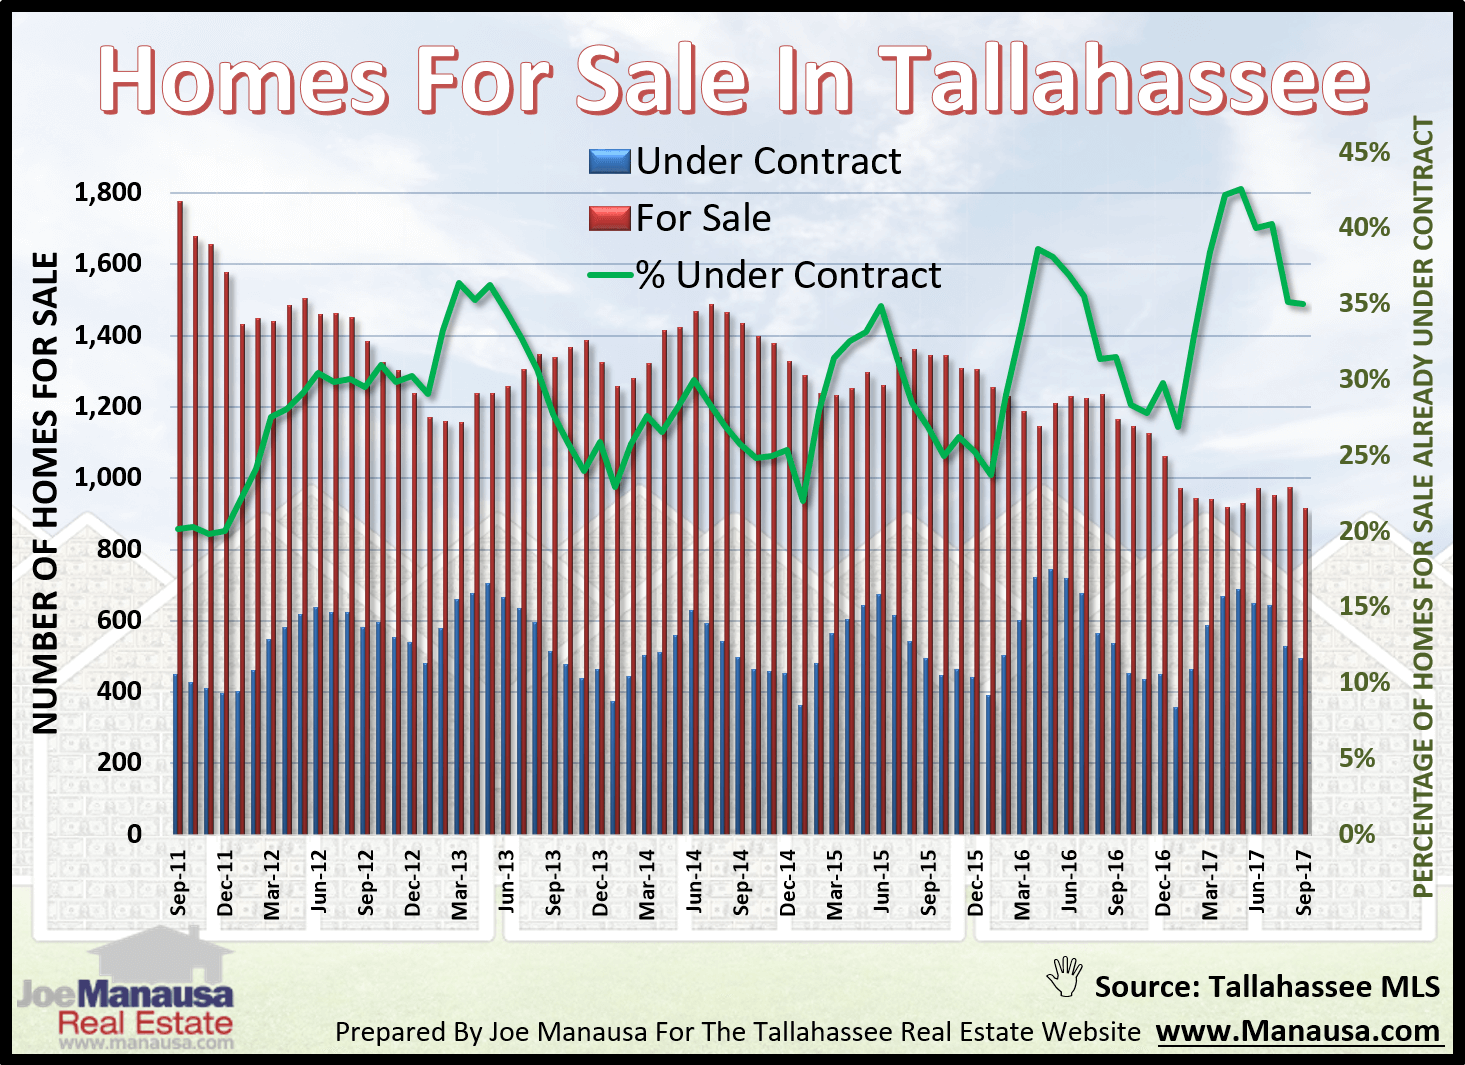 Status of all homes for sale in Tallahassee